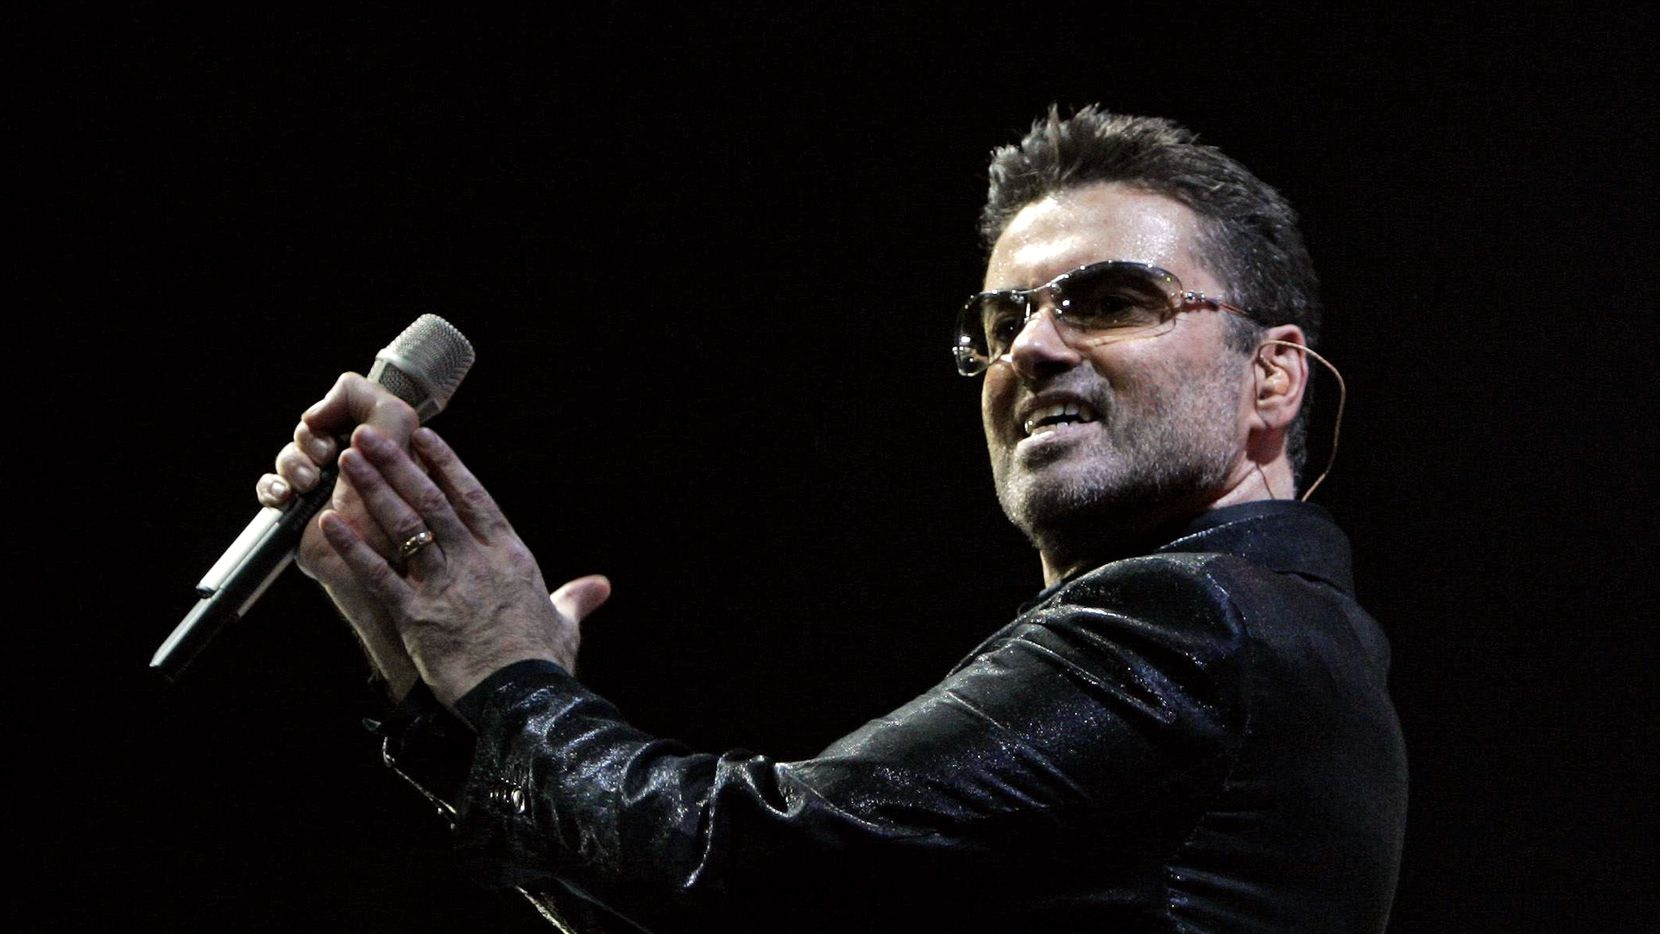 ORG XMIT: *S0417937013* British pop star George Michael performs on stage of the Palau Sant Jordi in Barcelona 23 September 2006.